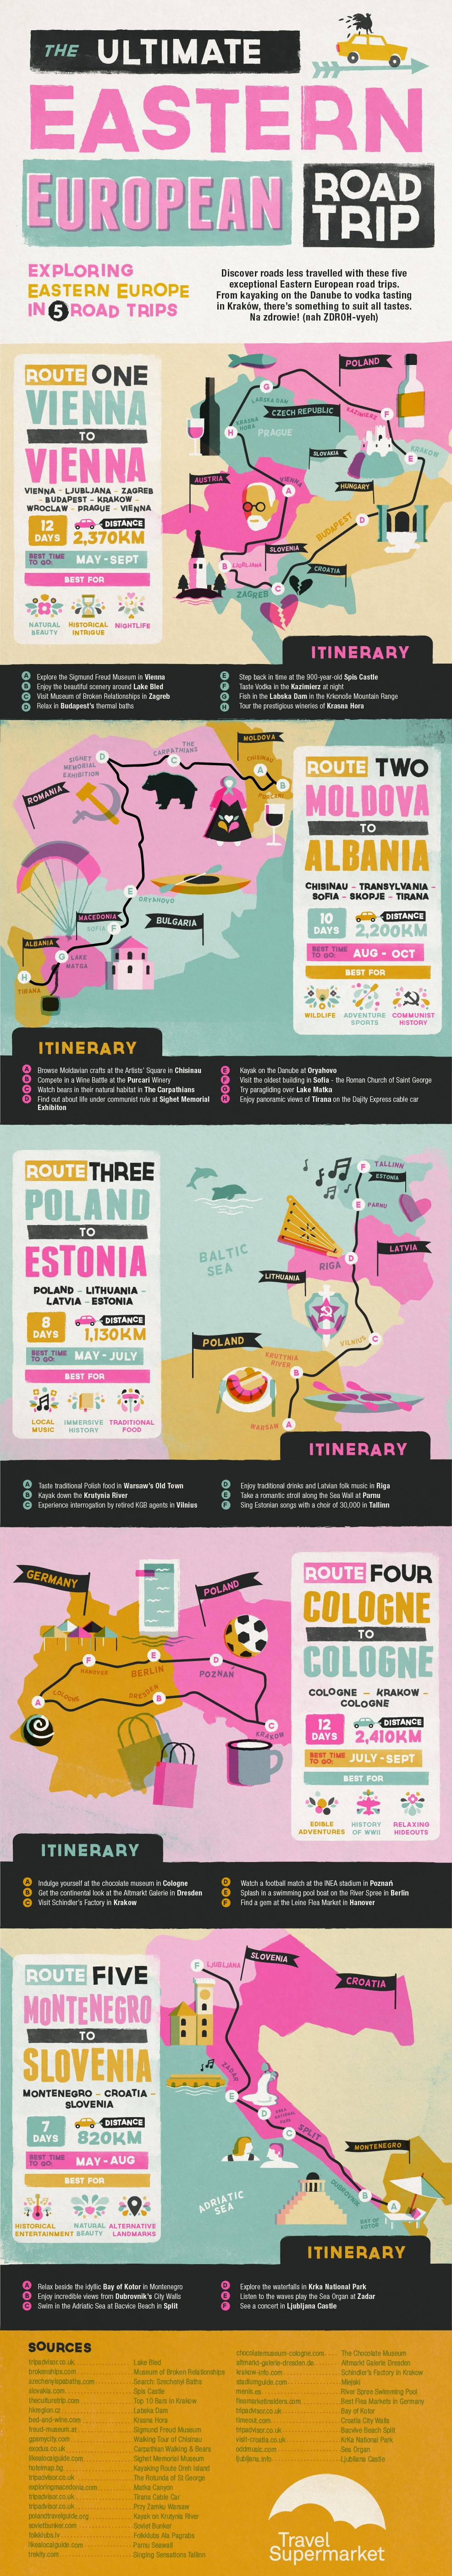 A Guide To The Ultimate Eastern European Road Trip - Infographic